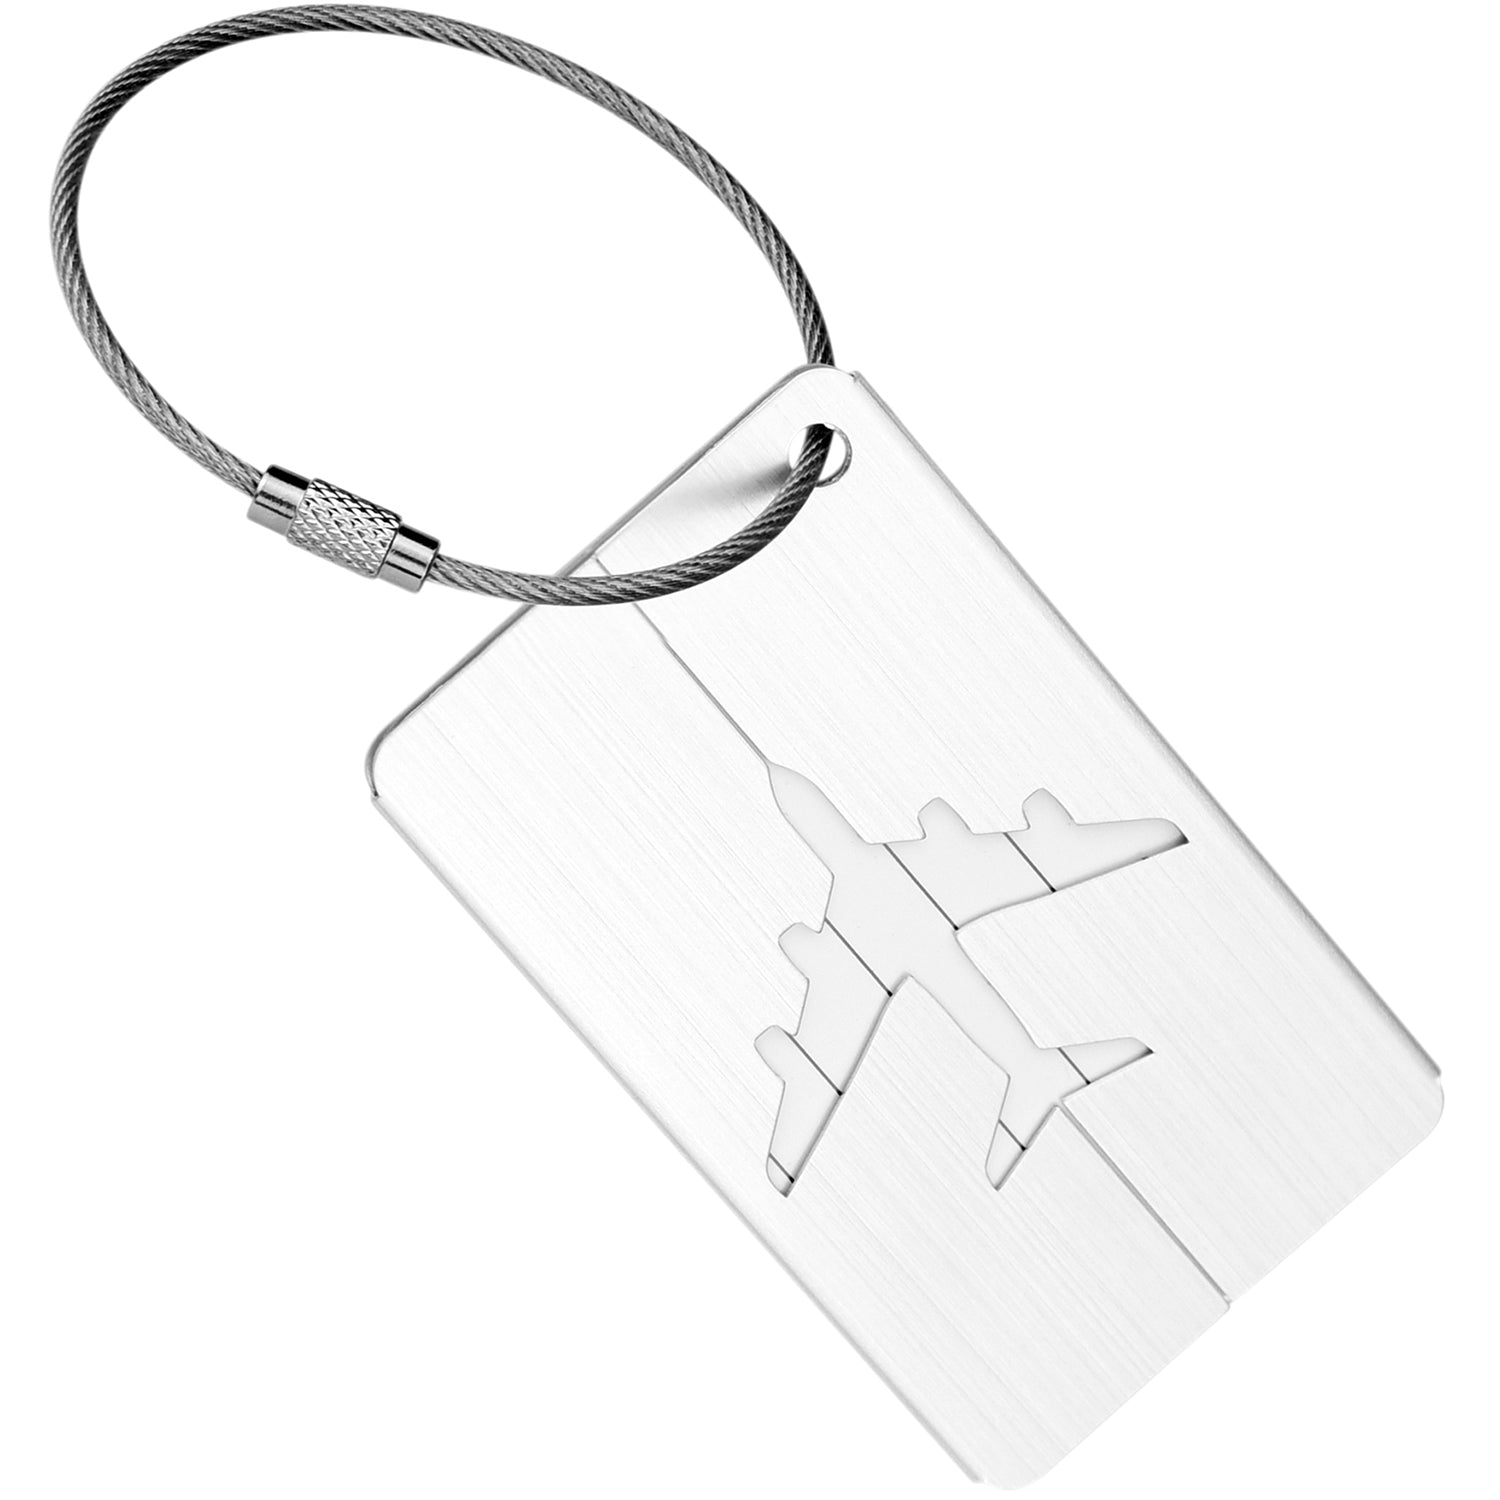 6 Silver Hollow Airplane Pattern Aluminum Luggage Tags